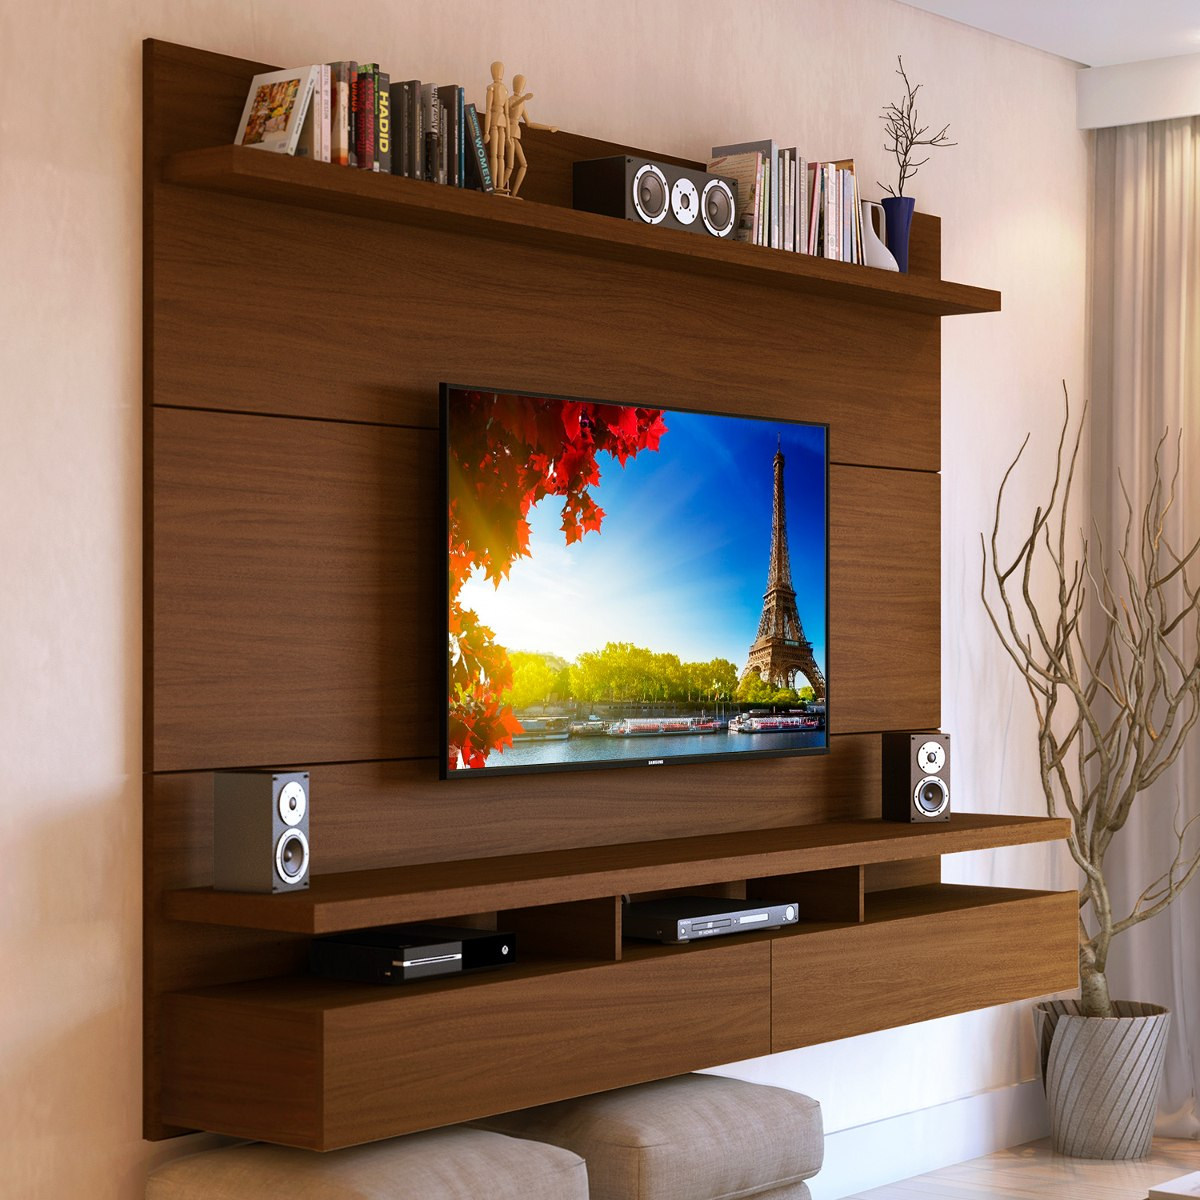 Mueble tv pared fabulous with mueble tv pared great for Muebles pequenos para tv